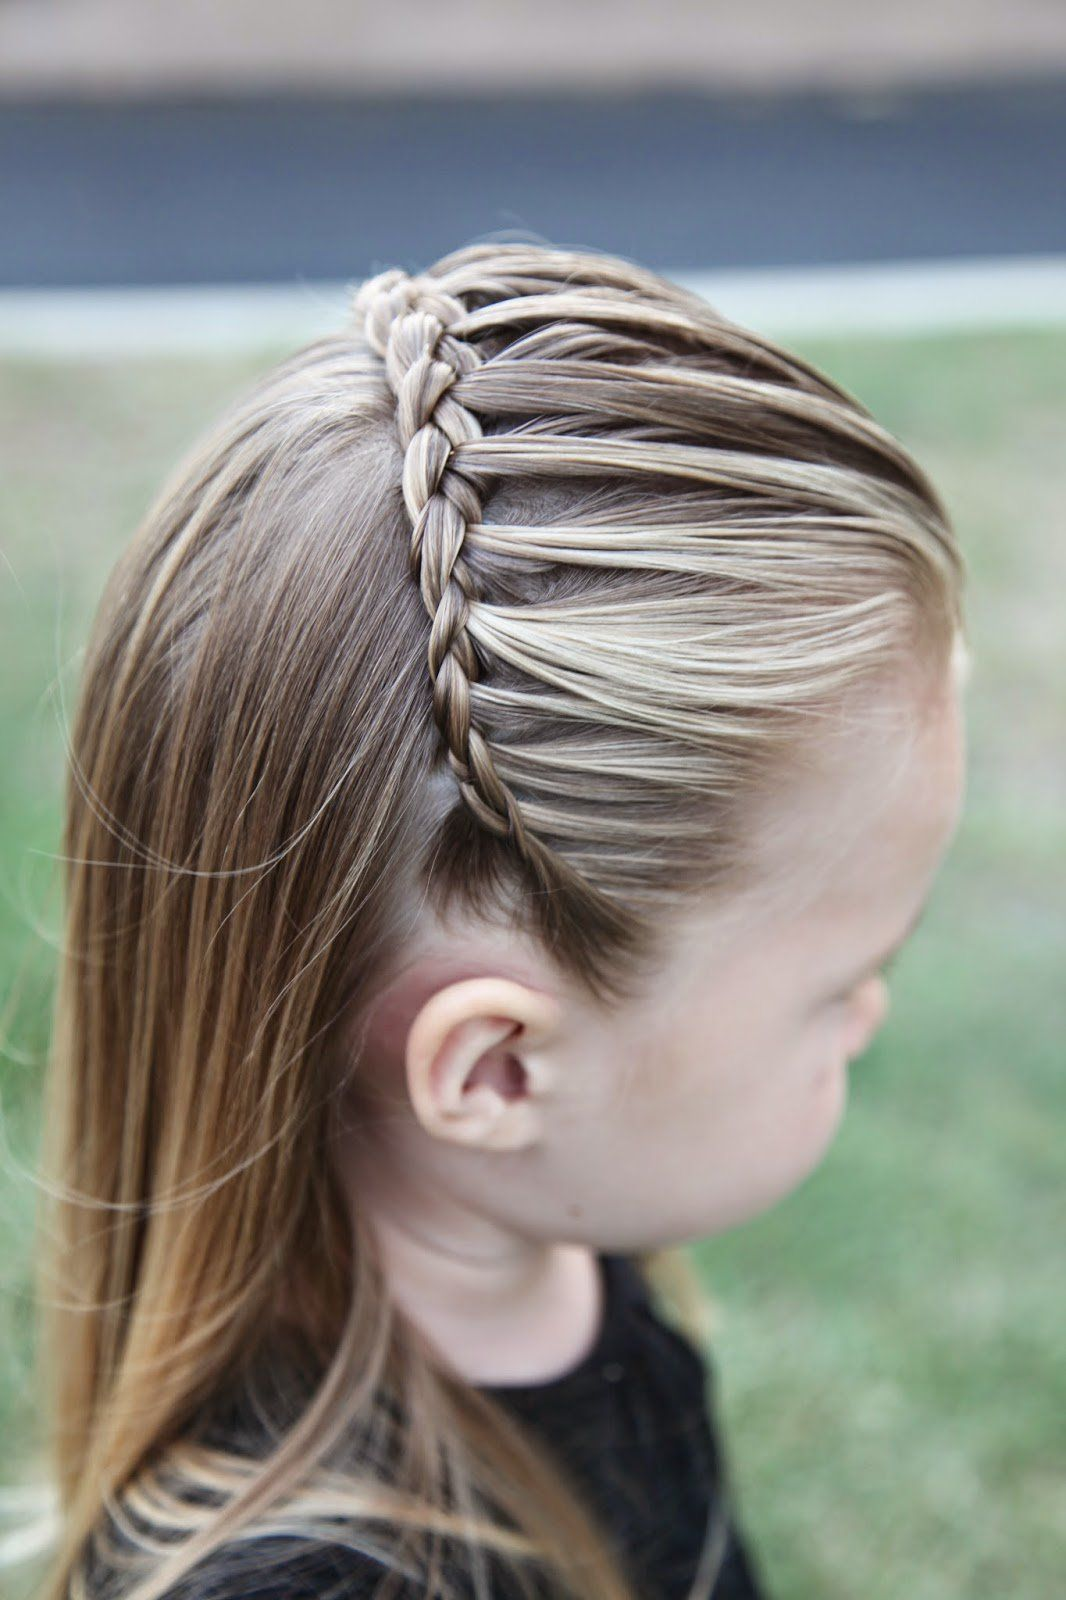 25 little girl hairstylesyou can do yourself pinterest girl 25 little girl hairstylesyou can do yourself get out of your hairstyle rut and do something a little more fun via make it and love it solutioingenieria Choice Image